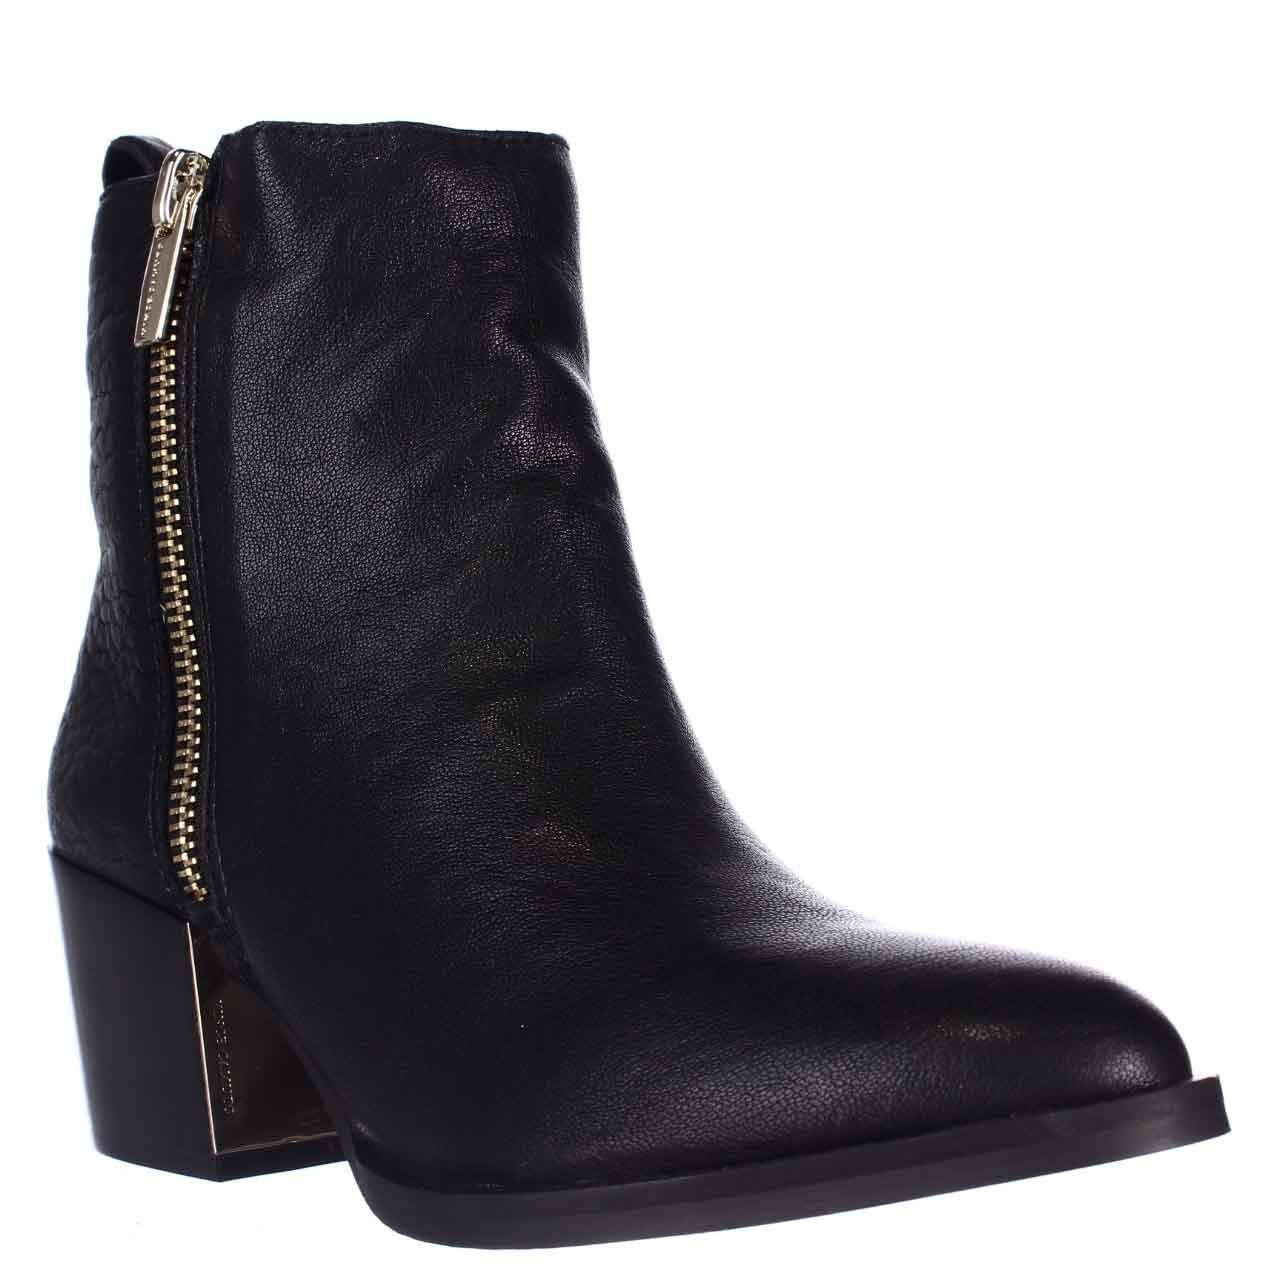 Low Heel Ankle Boots Bx0nmfdh